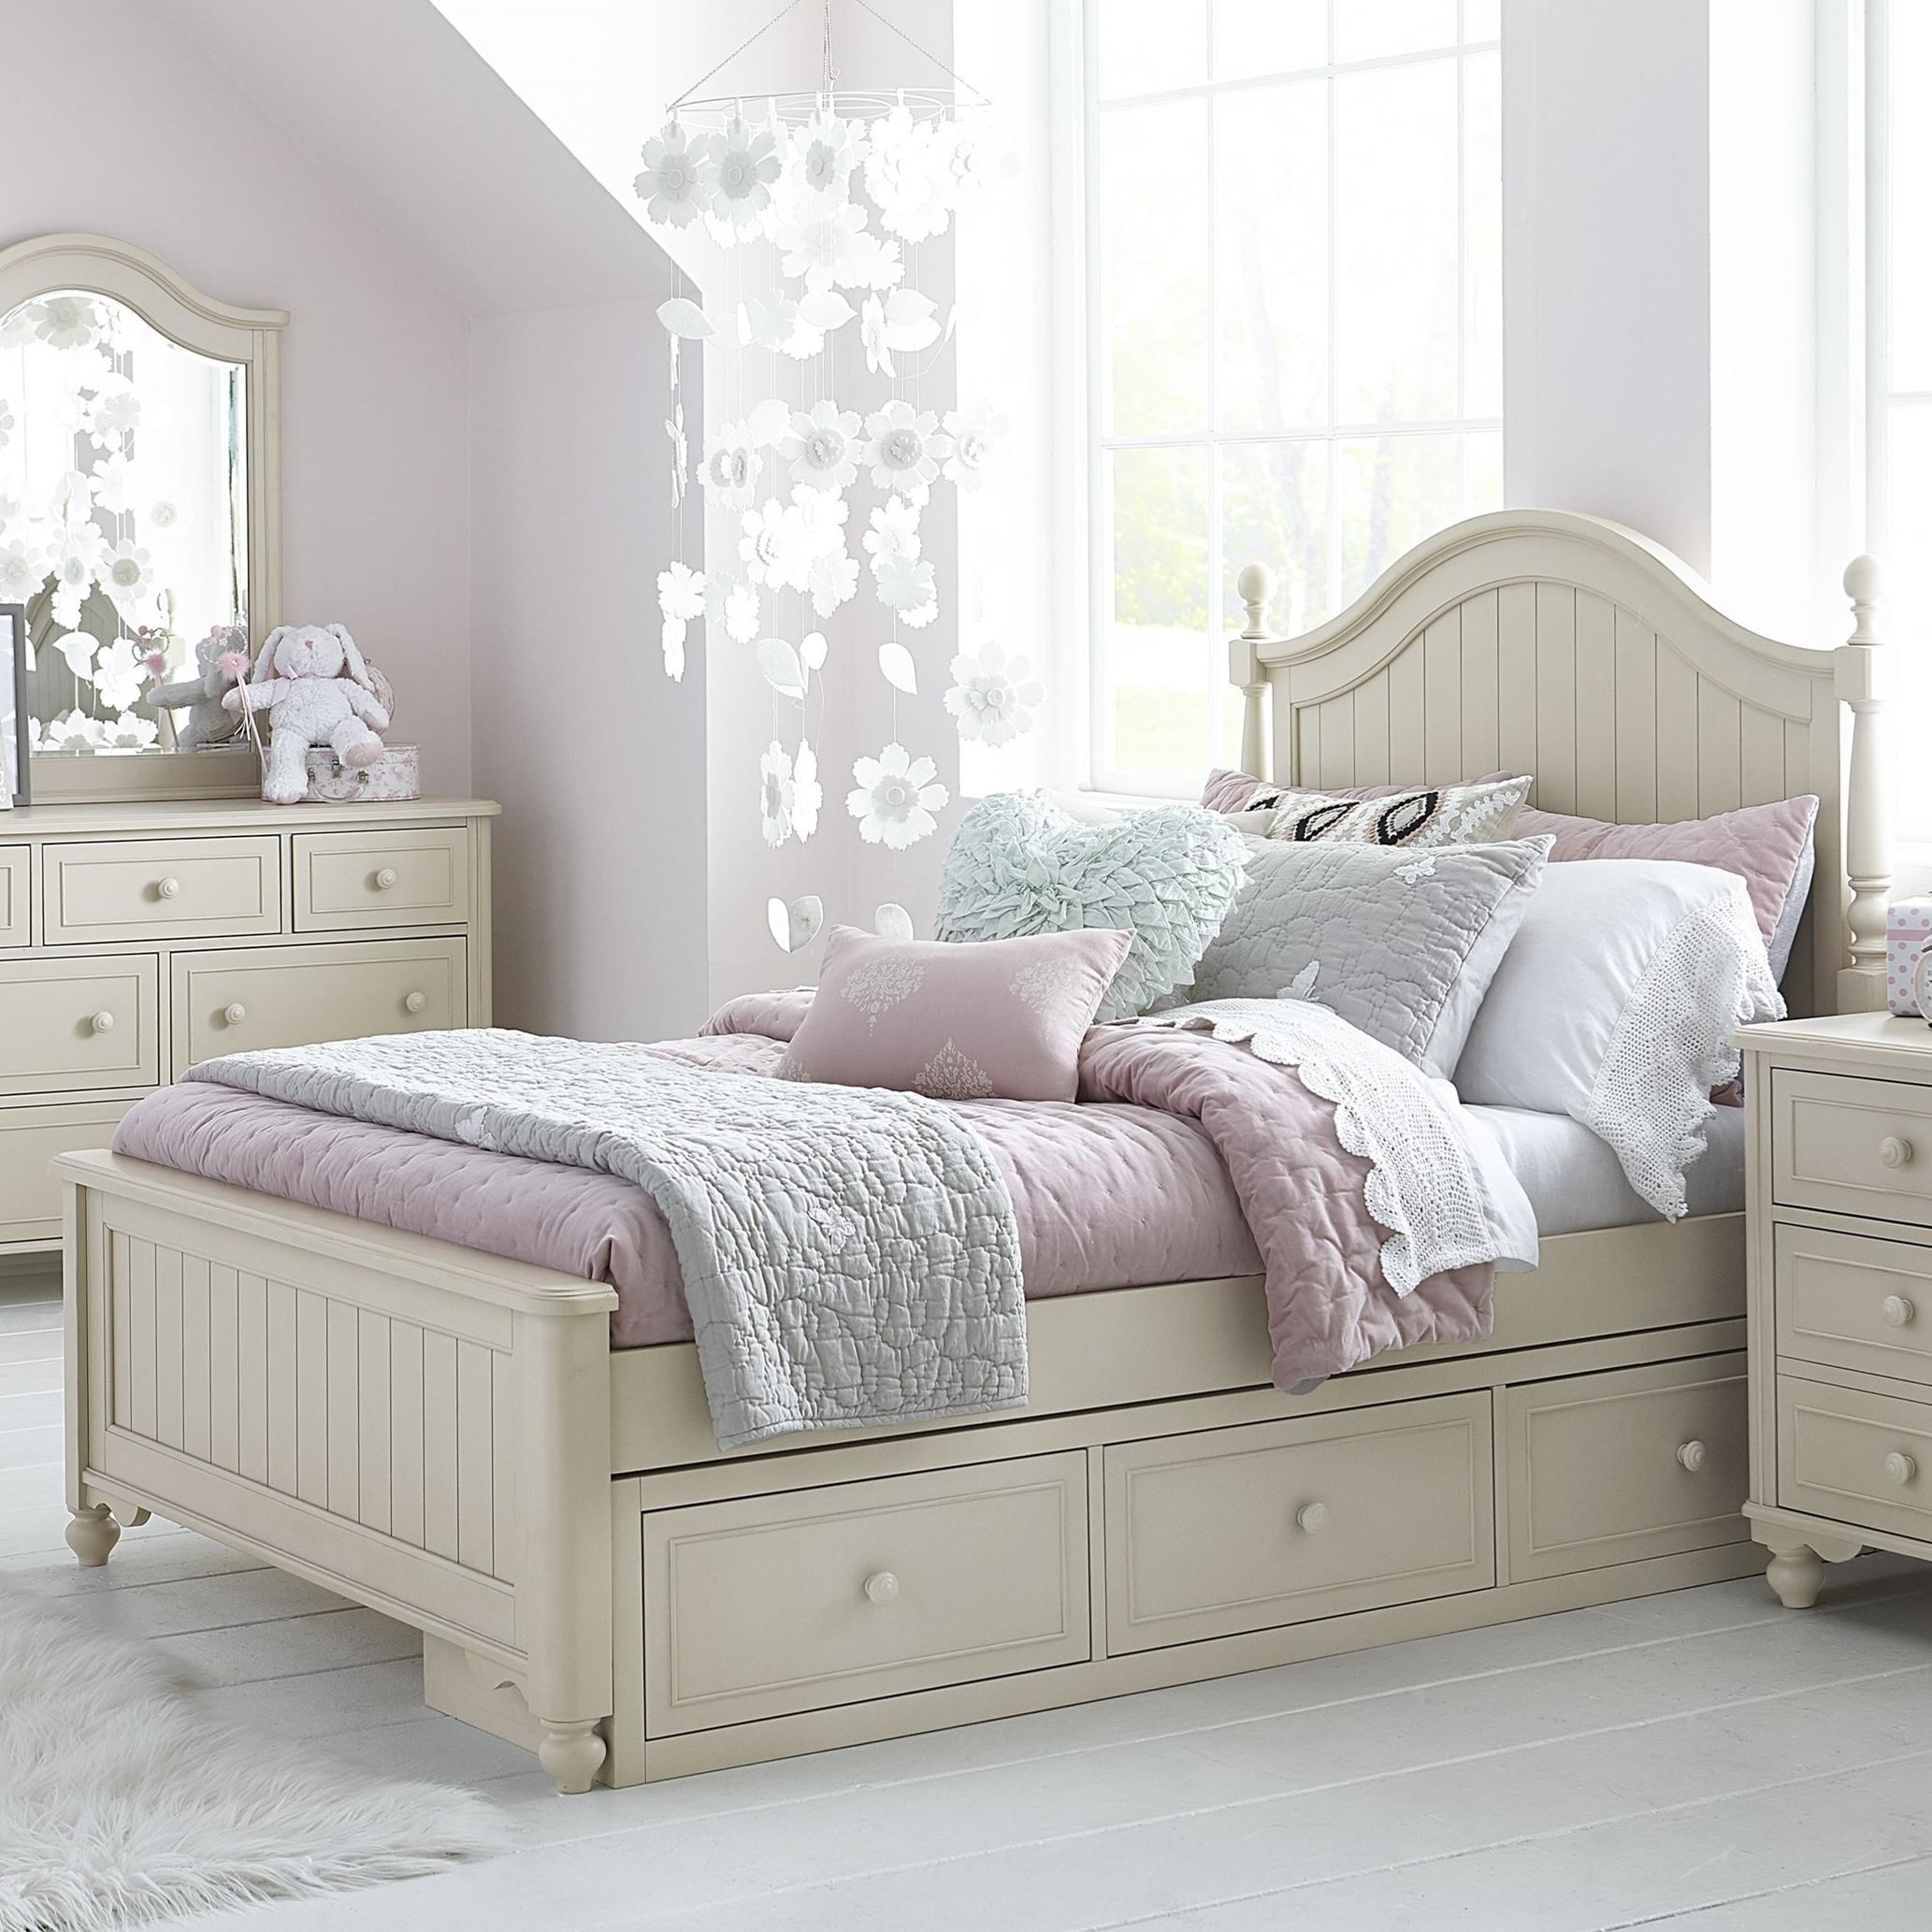 Legacy Classic Kids SummersetFull Bed With Storage Drawer ...